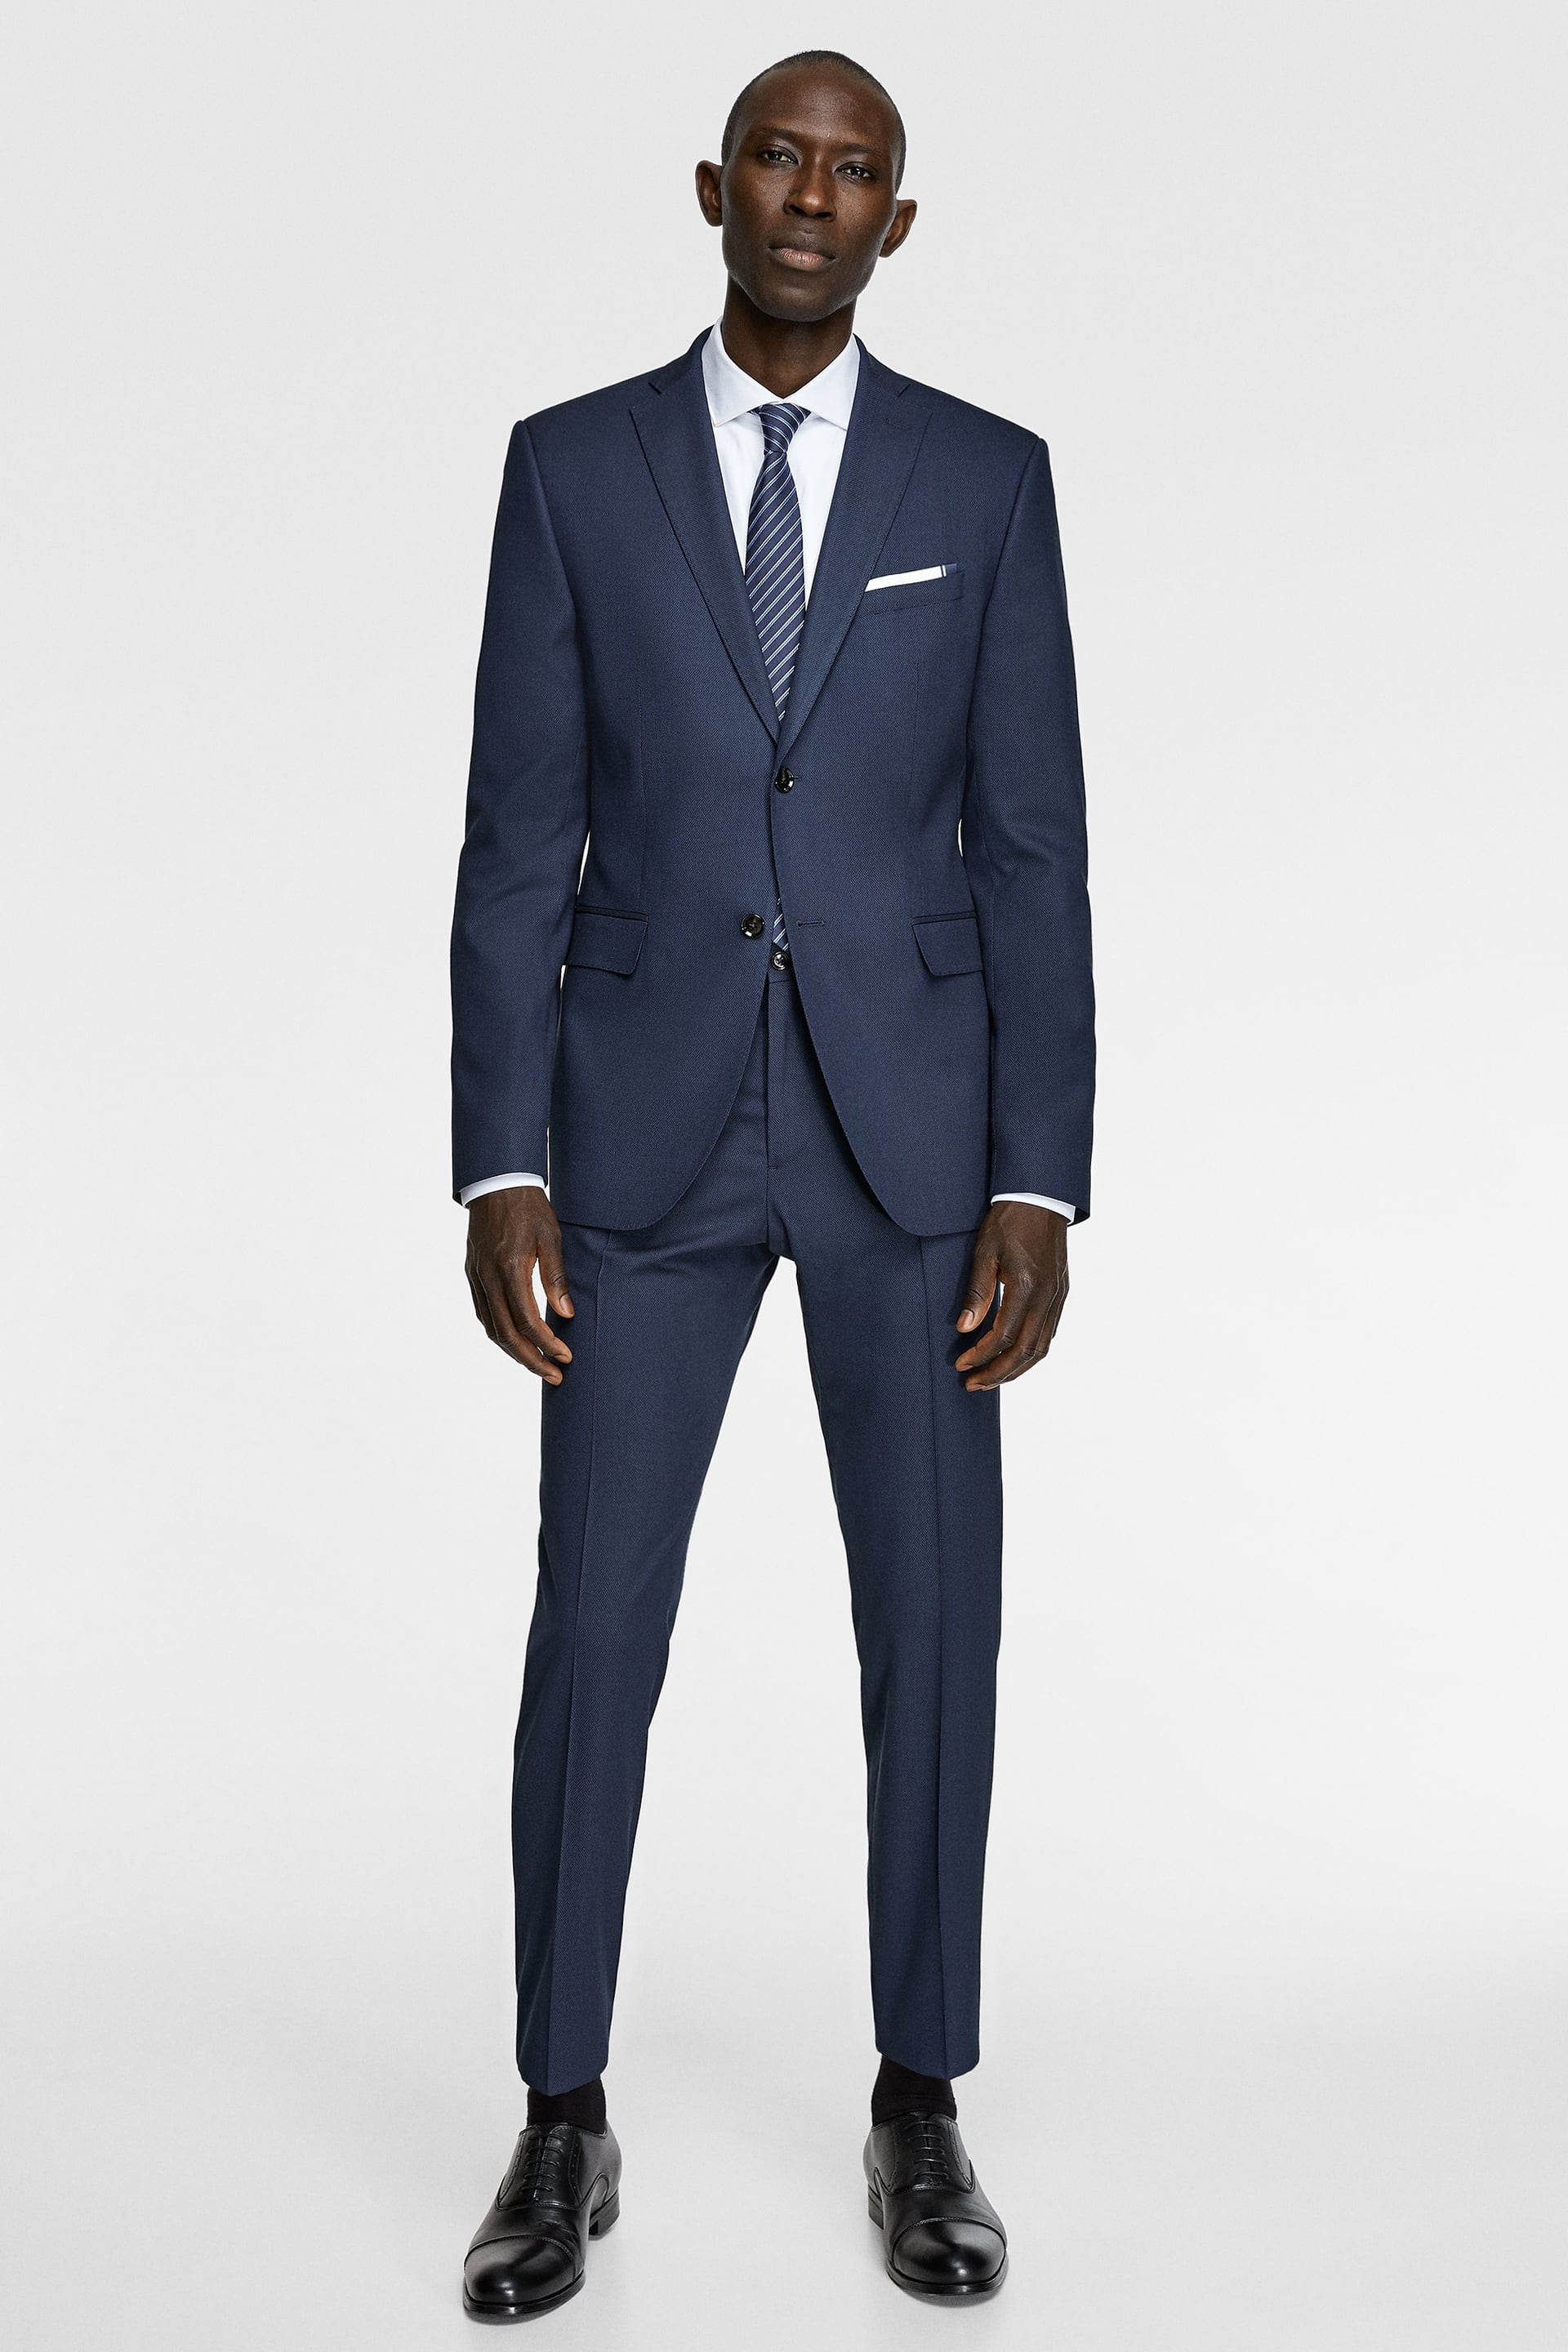 BIRD'S-EYE SUIT BLAZER